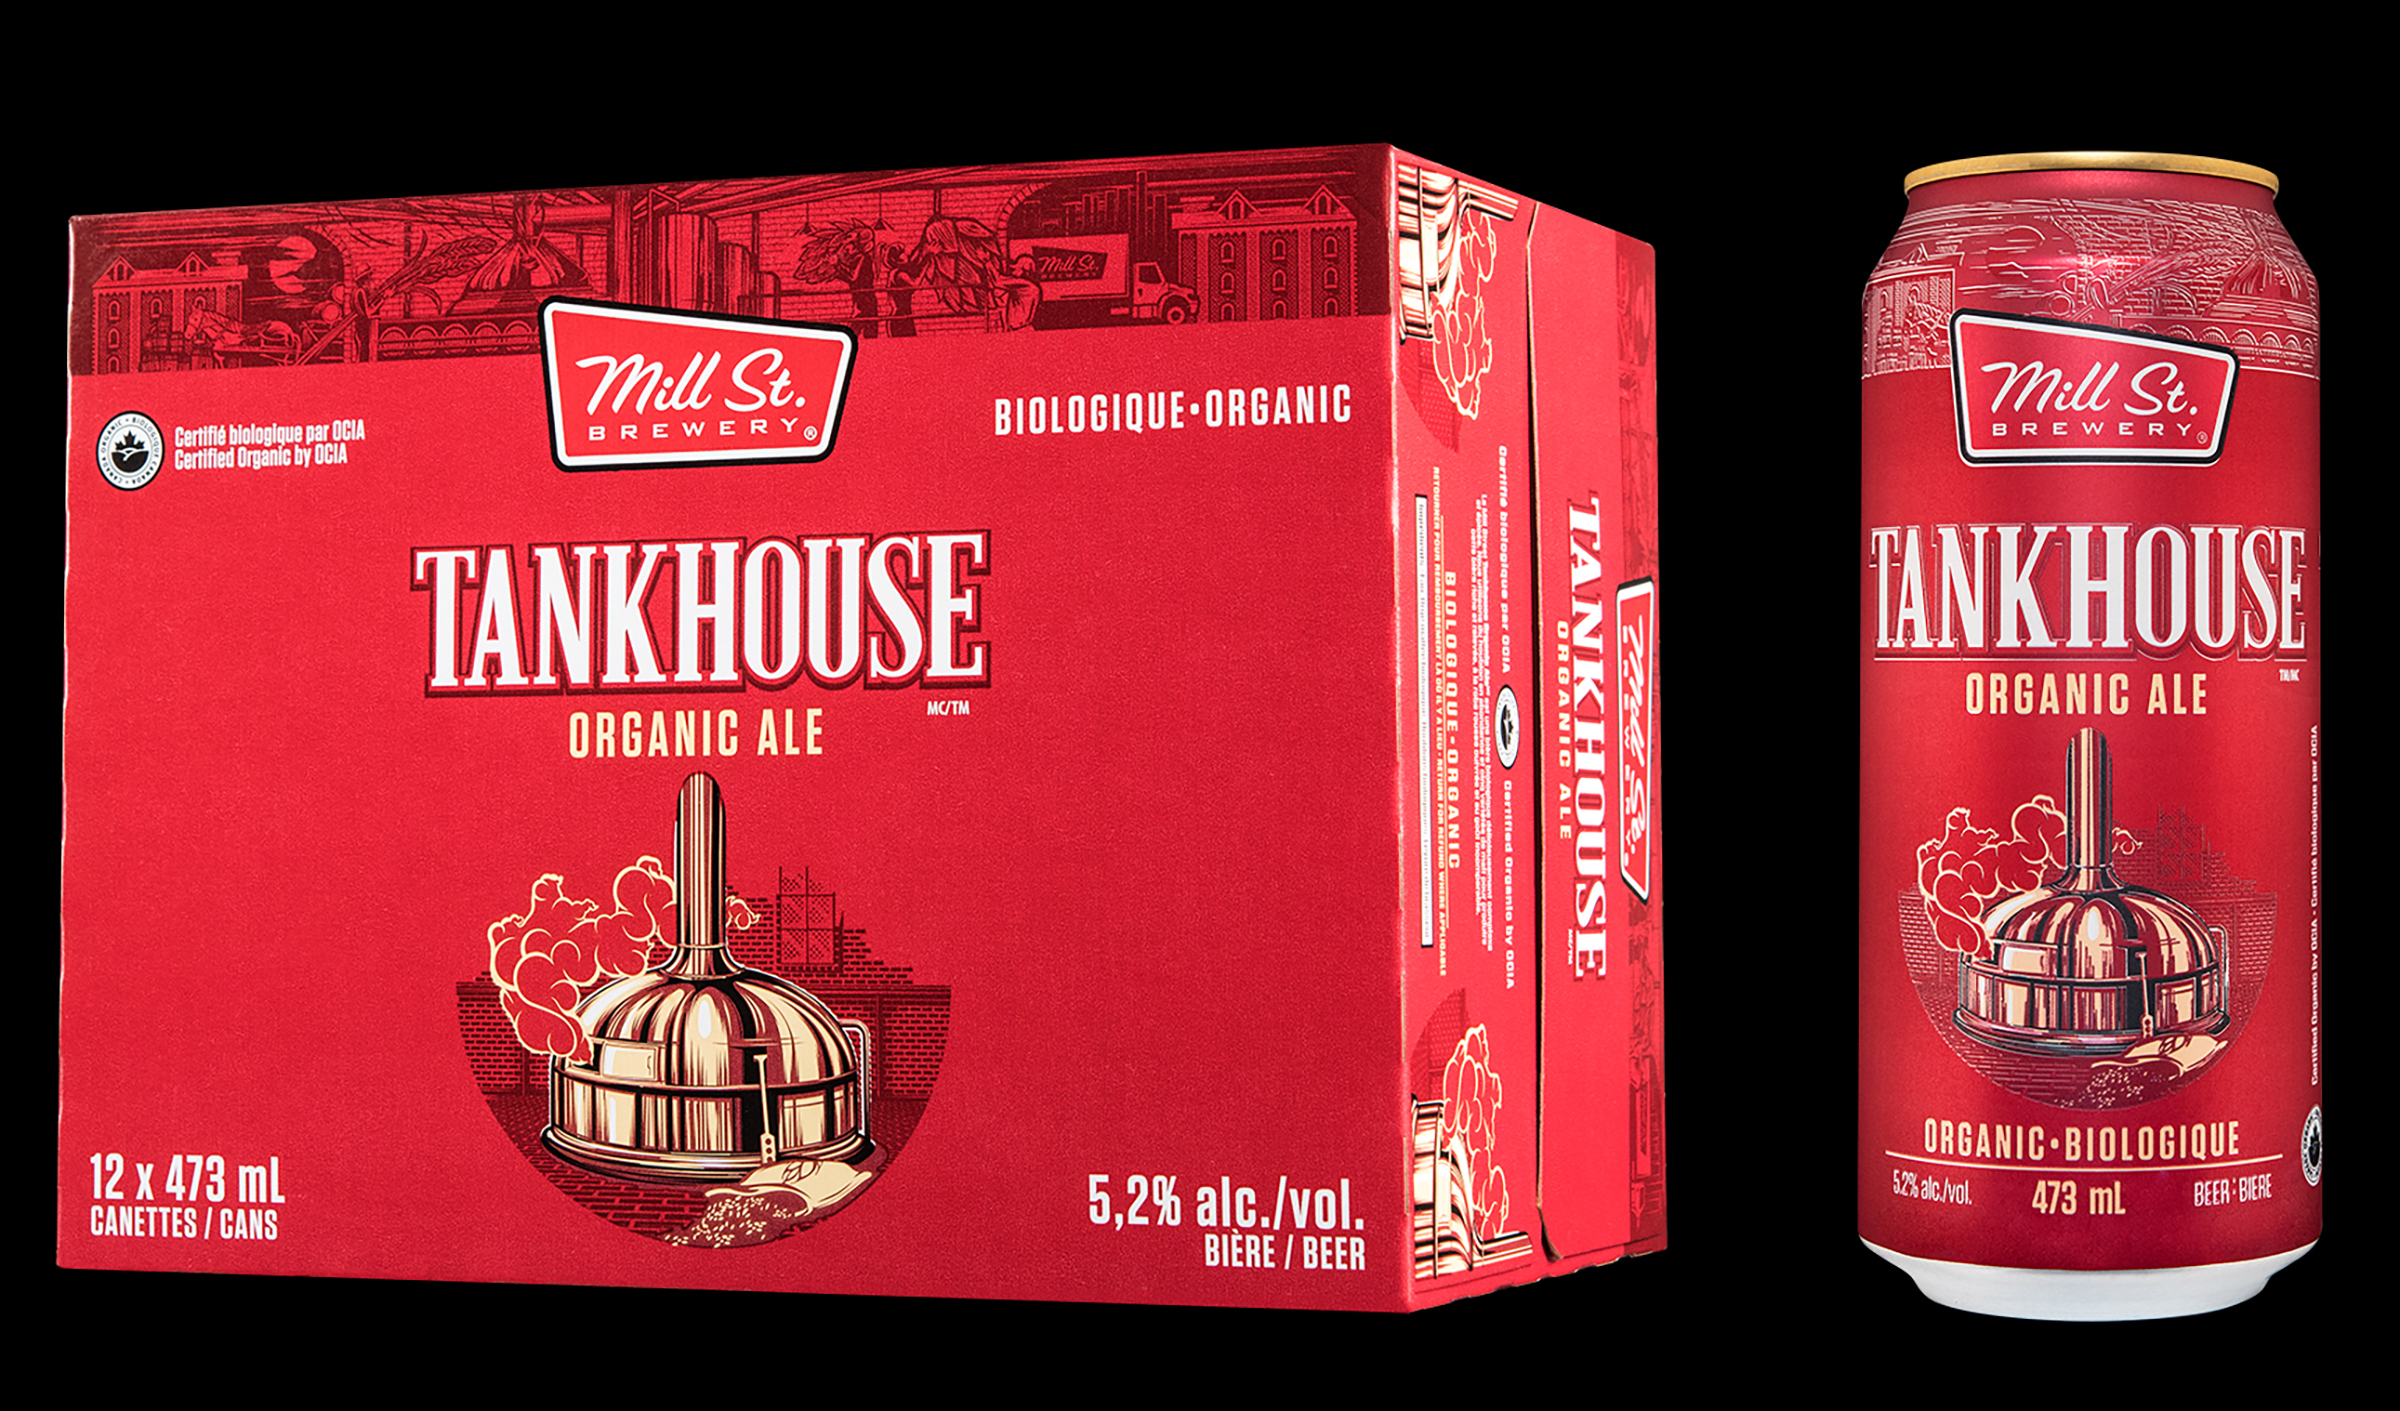 Packaging Design for Tankhouse Organic Ale, for Mill Street Brewery